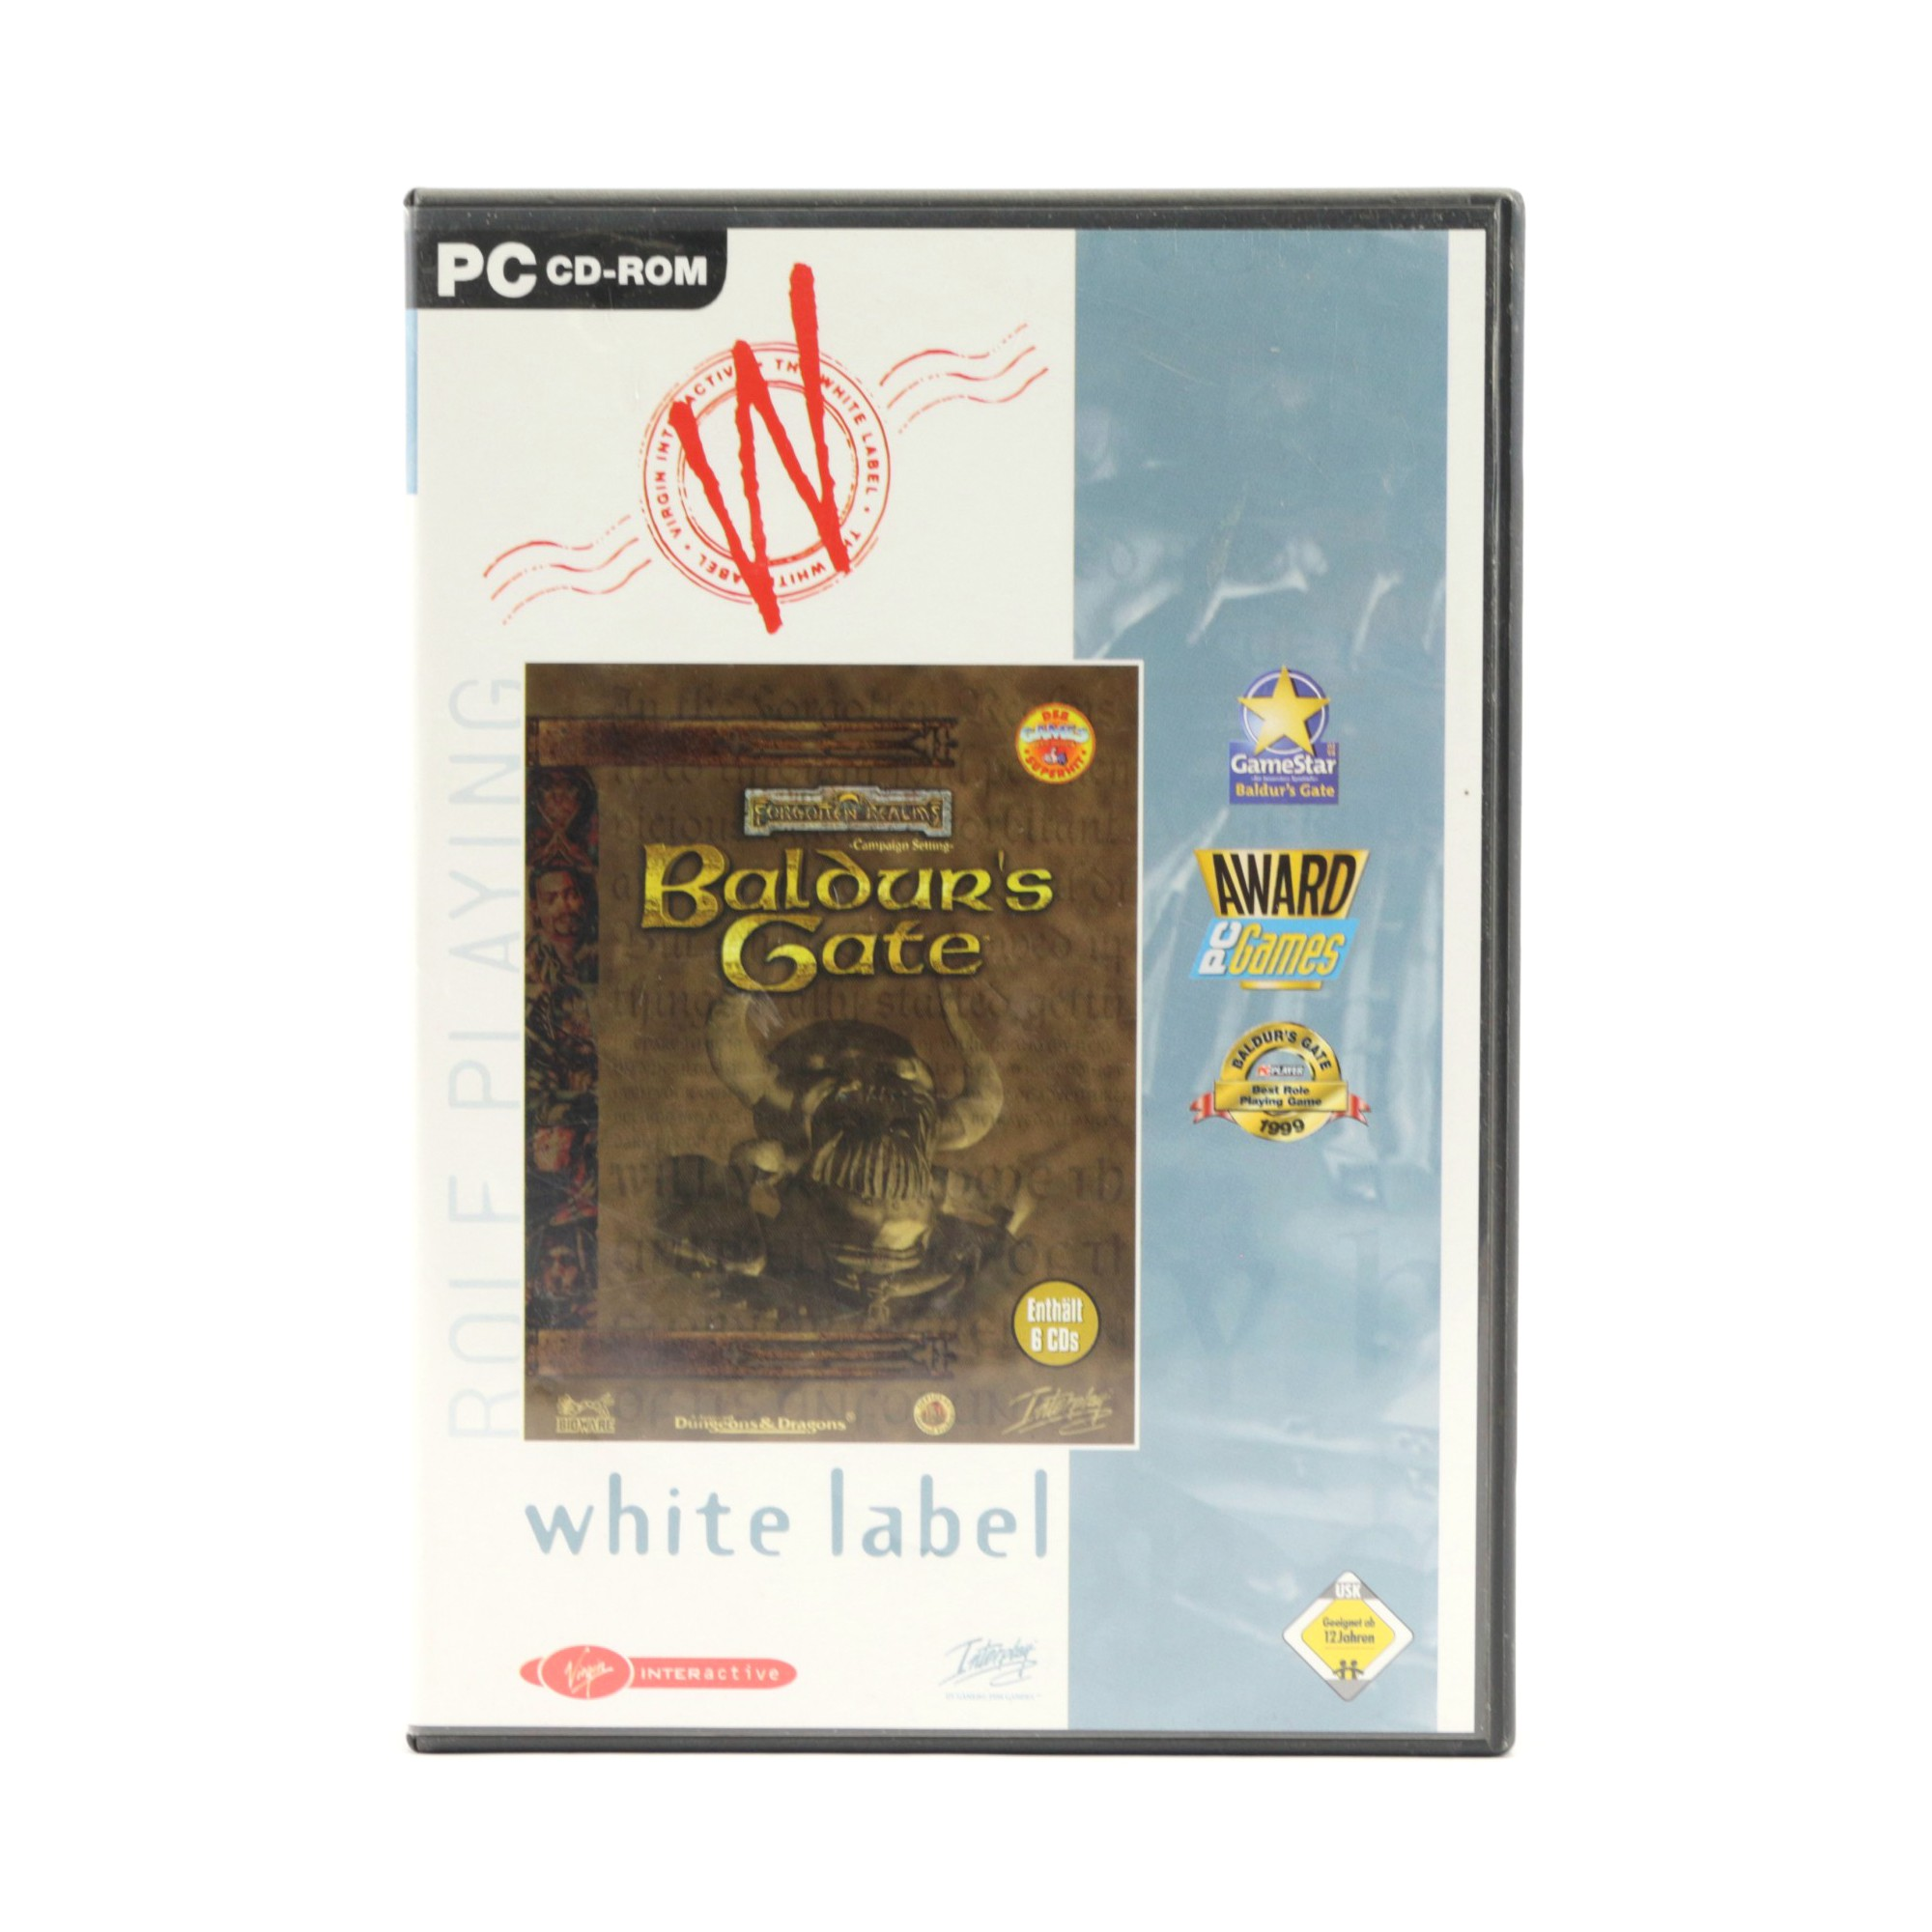 Baldur's Gate #White Label